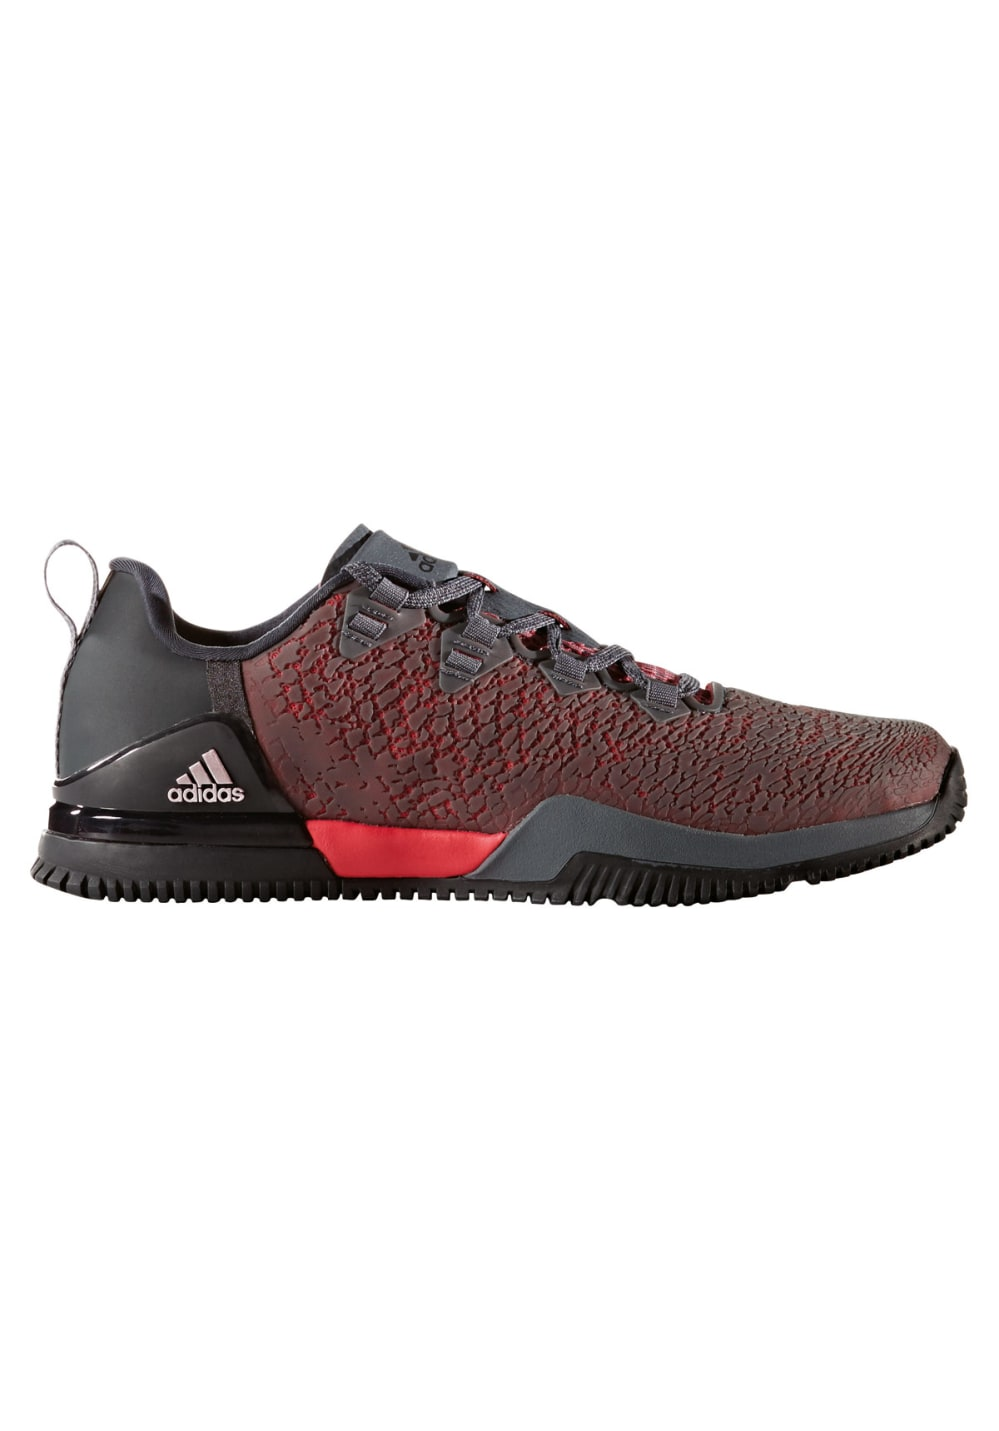 check out 990d5 f1a81 Next. -60%. adidas. Crazypower Trainer - Chaussures fitness pour Femme